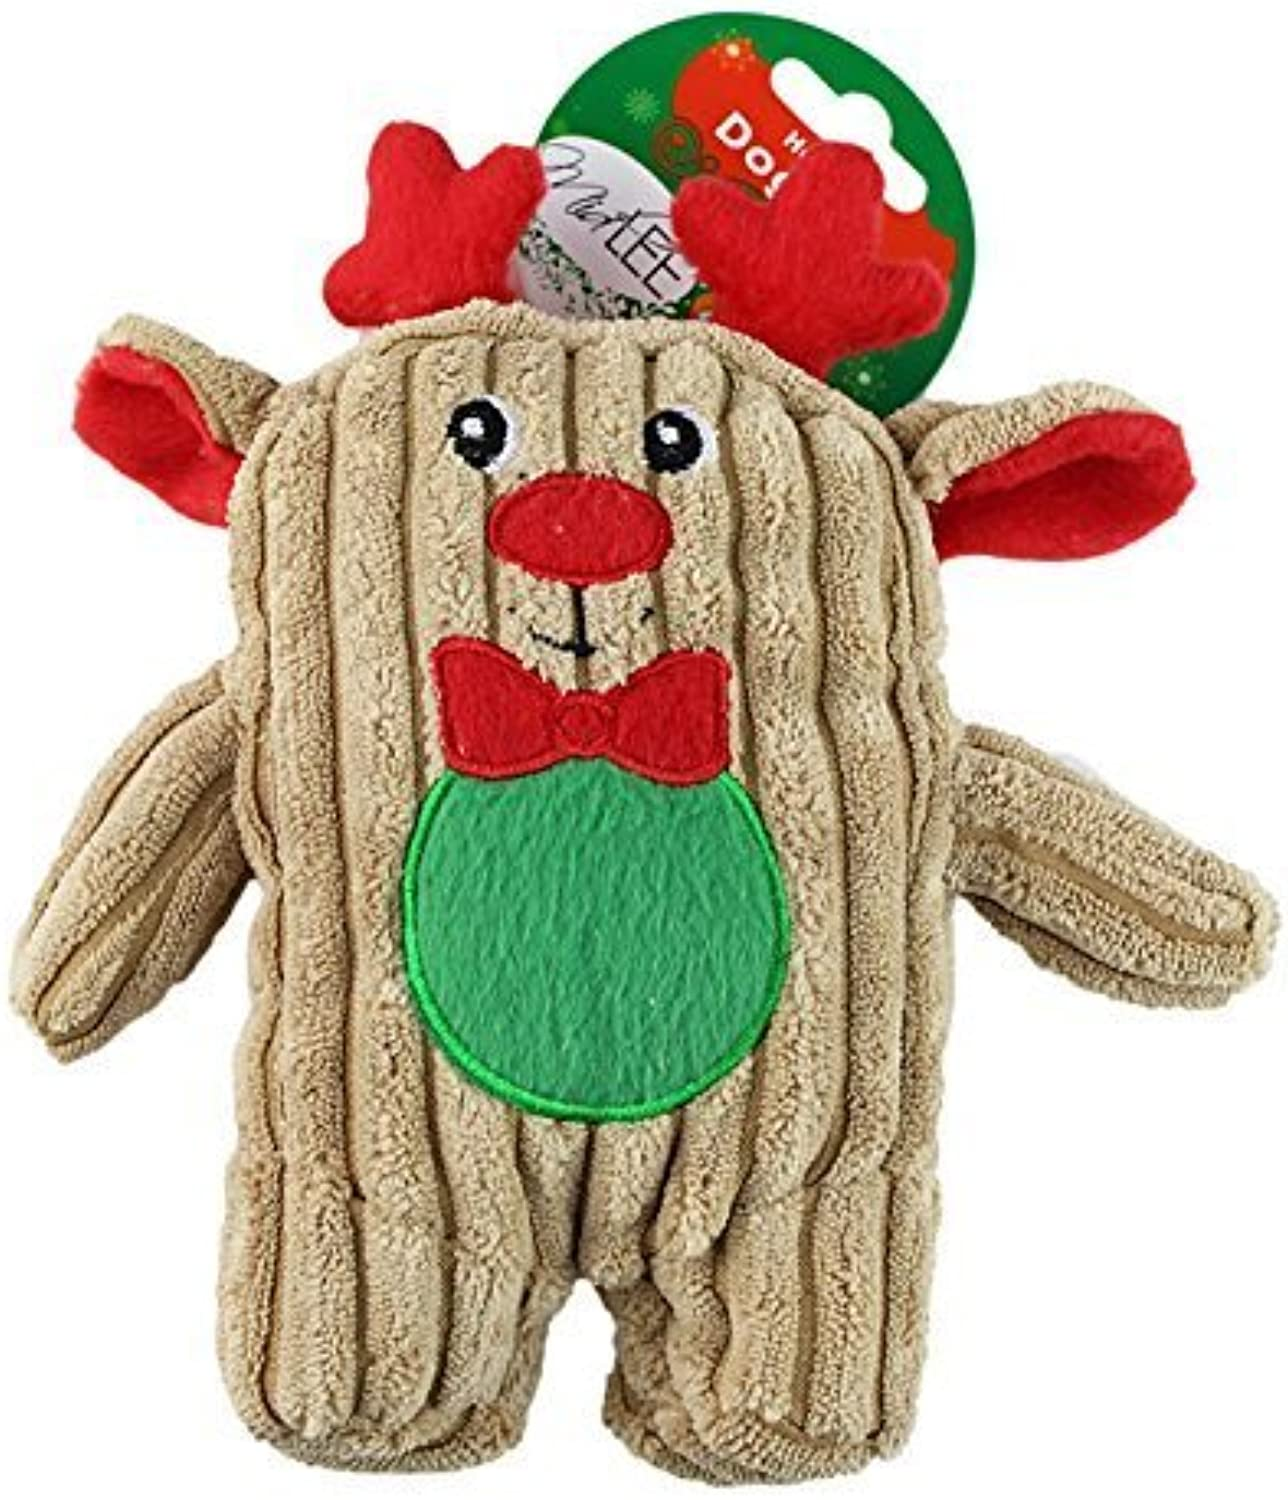 Reindeer Christmas Corduroy Dog Toy by Midlee